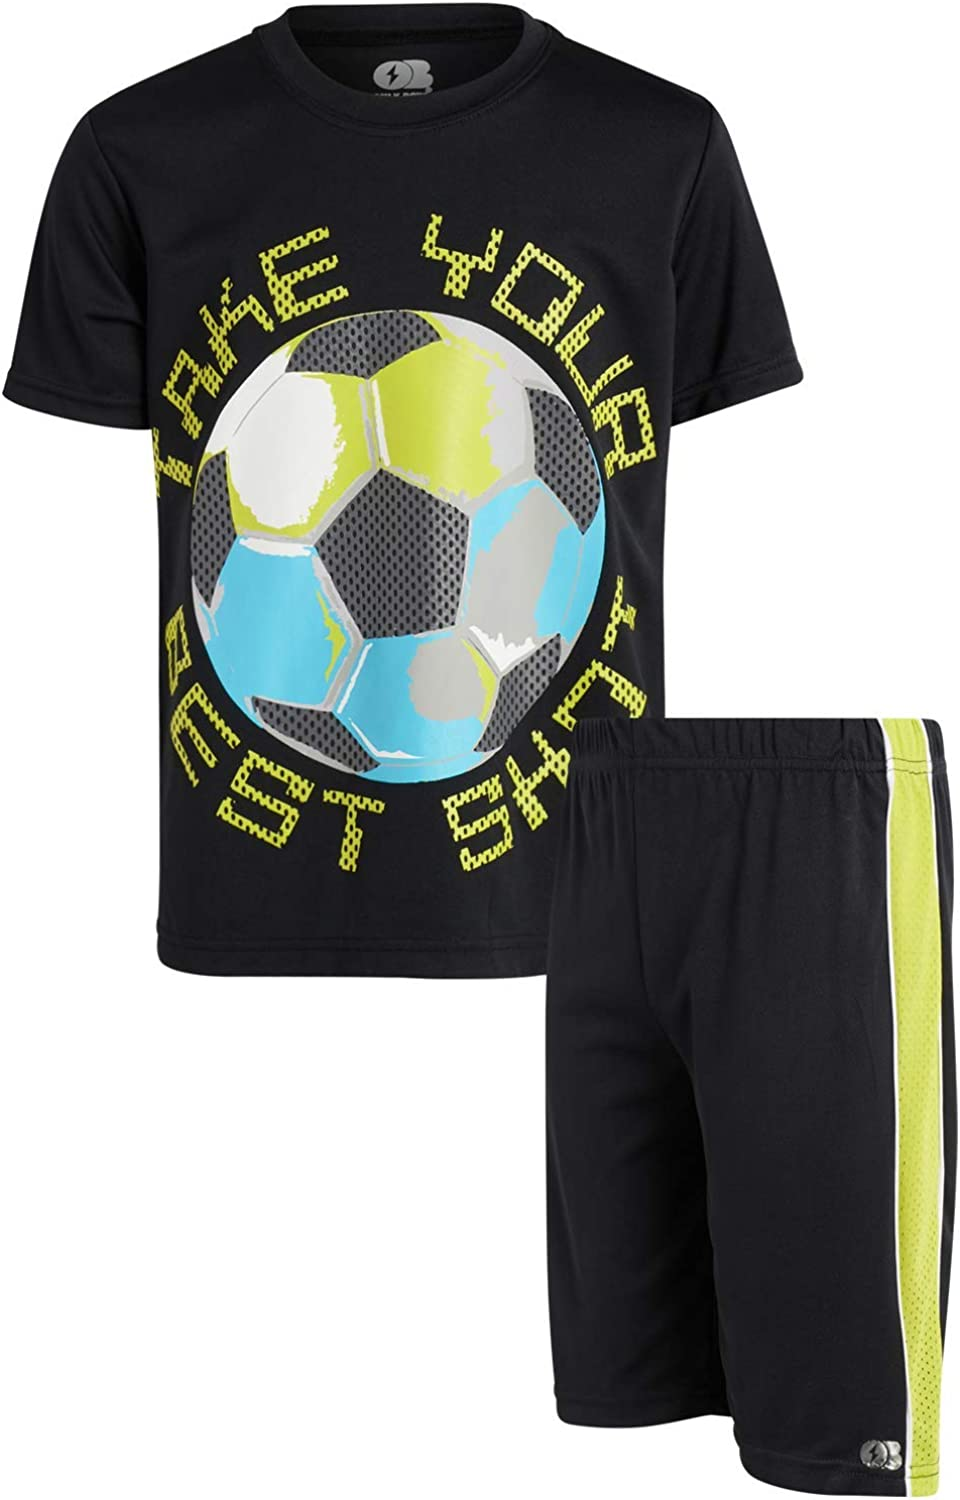 ONLY BOYS Basketball Short Set - 2 Piece Athletic Tee Shirt and Short Sets